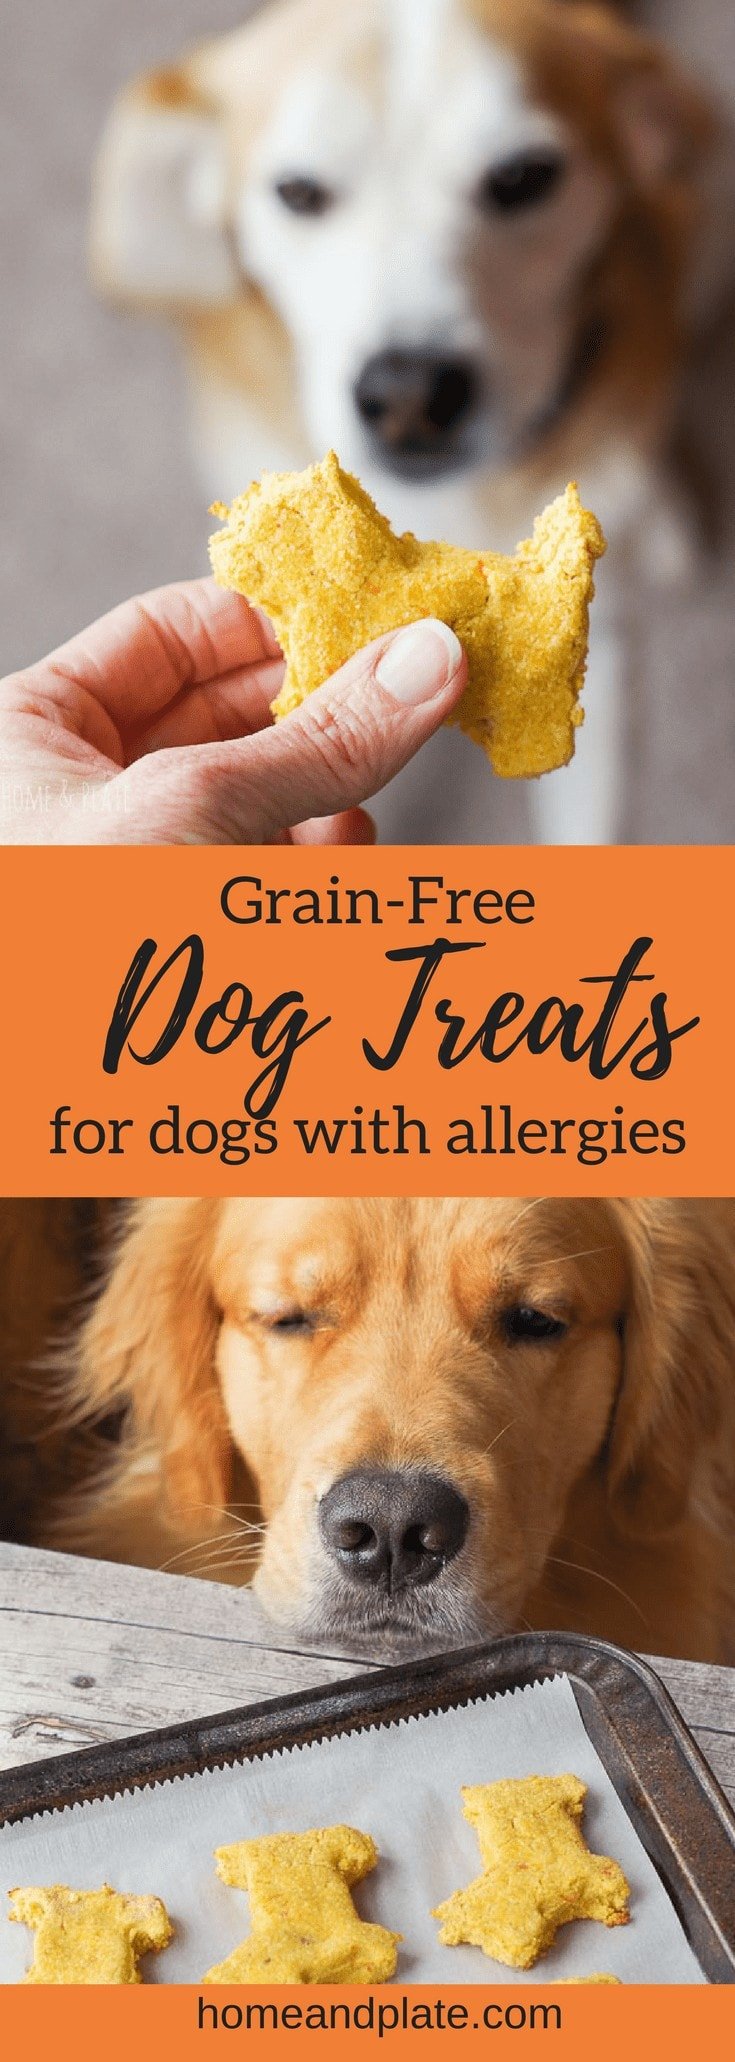 Grain-free dog treat recipe for dogs with allergies   www.homeandplate.com   Specially made dog biscuits made with coconut flour for dogs with allergies. #dogtreat #dogbiscuits #dogbones